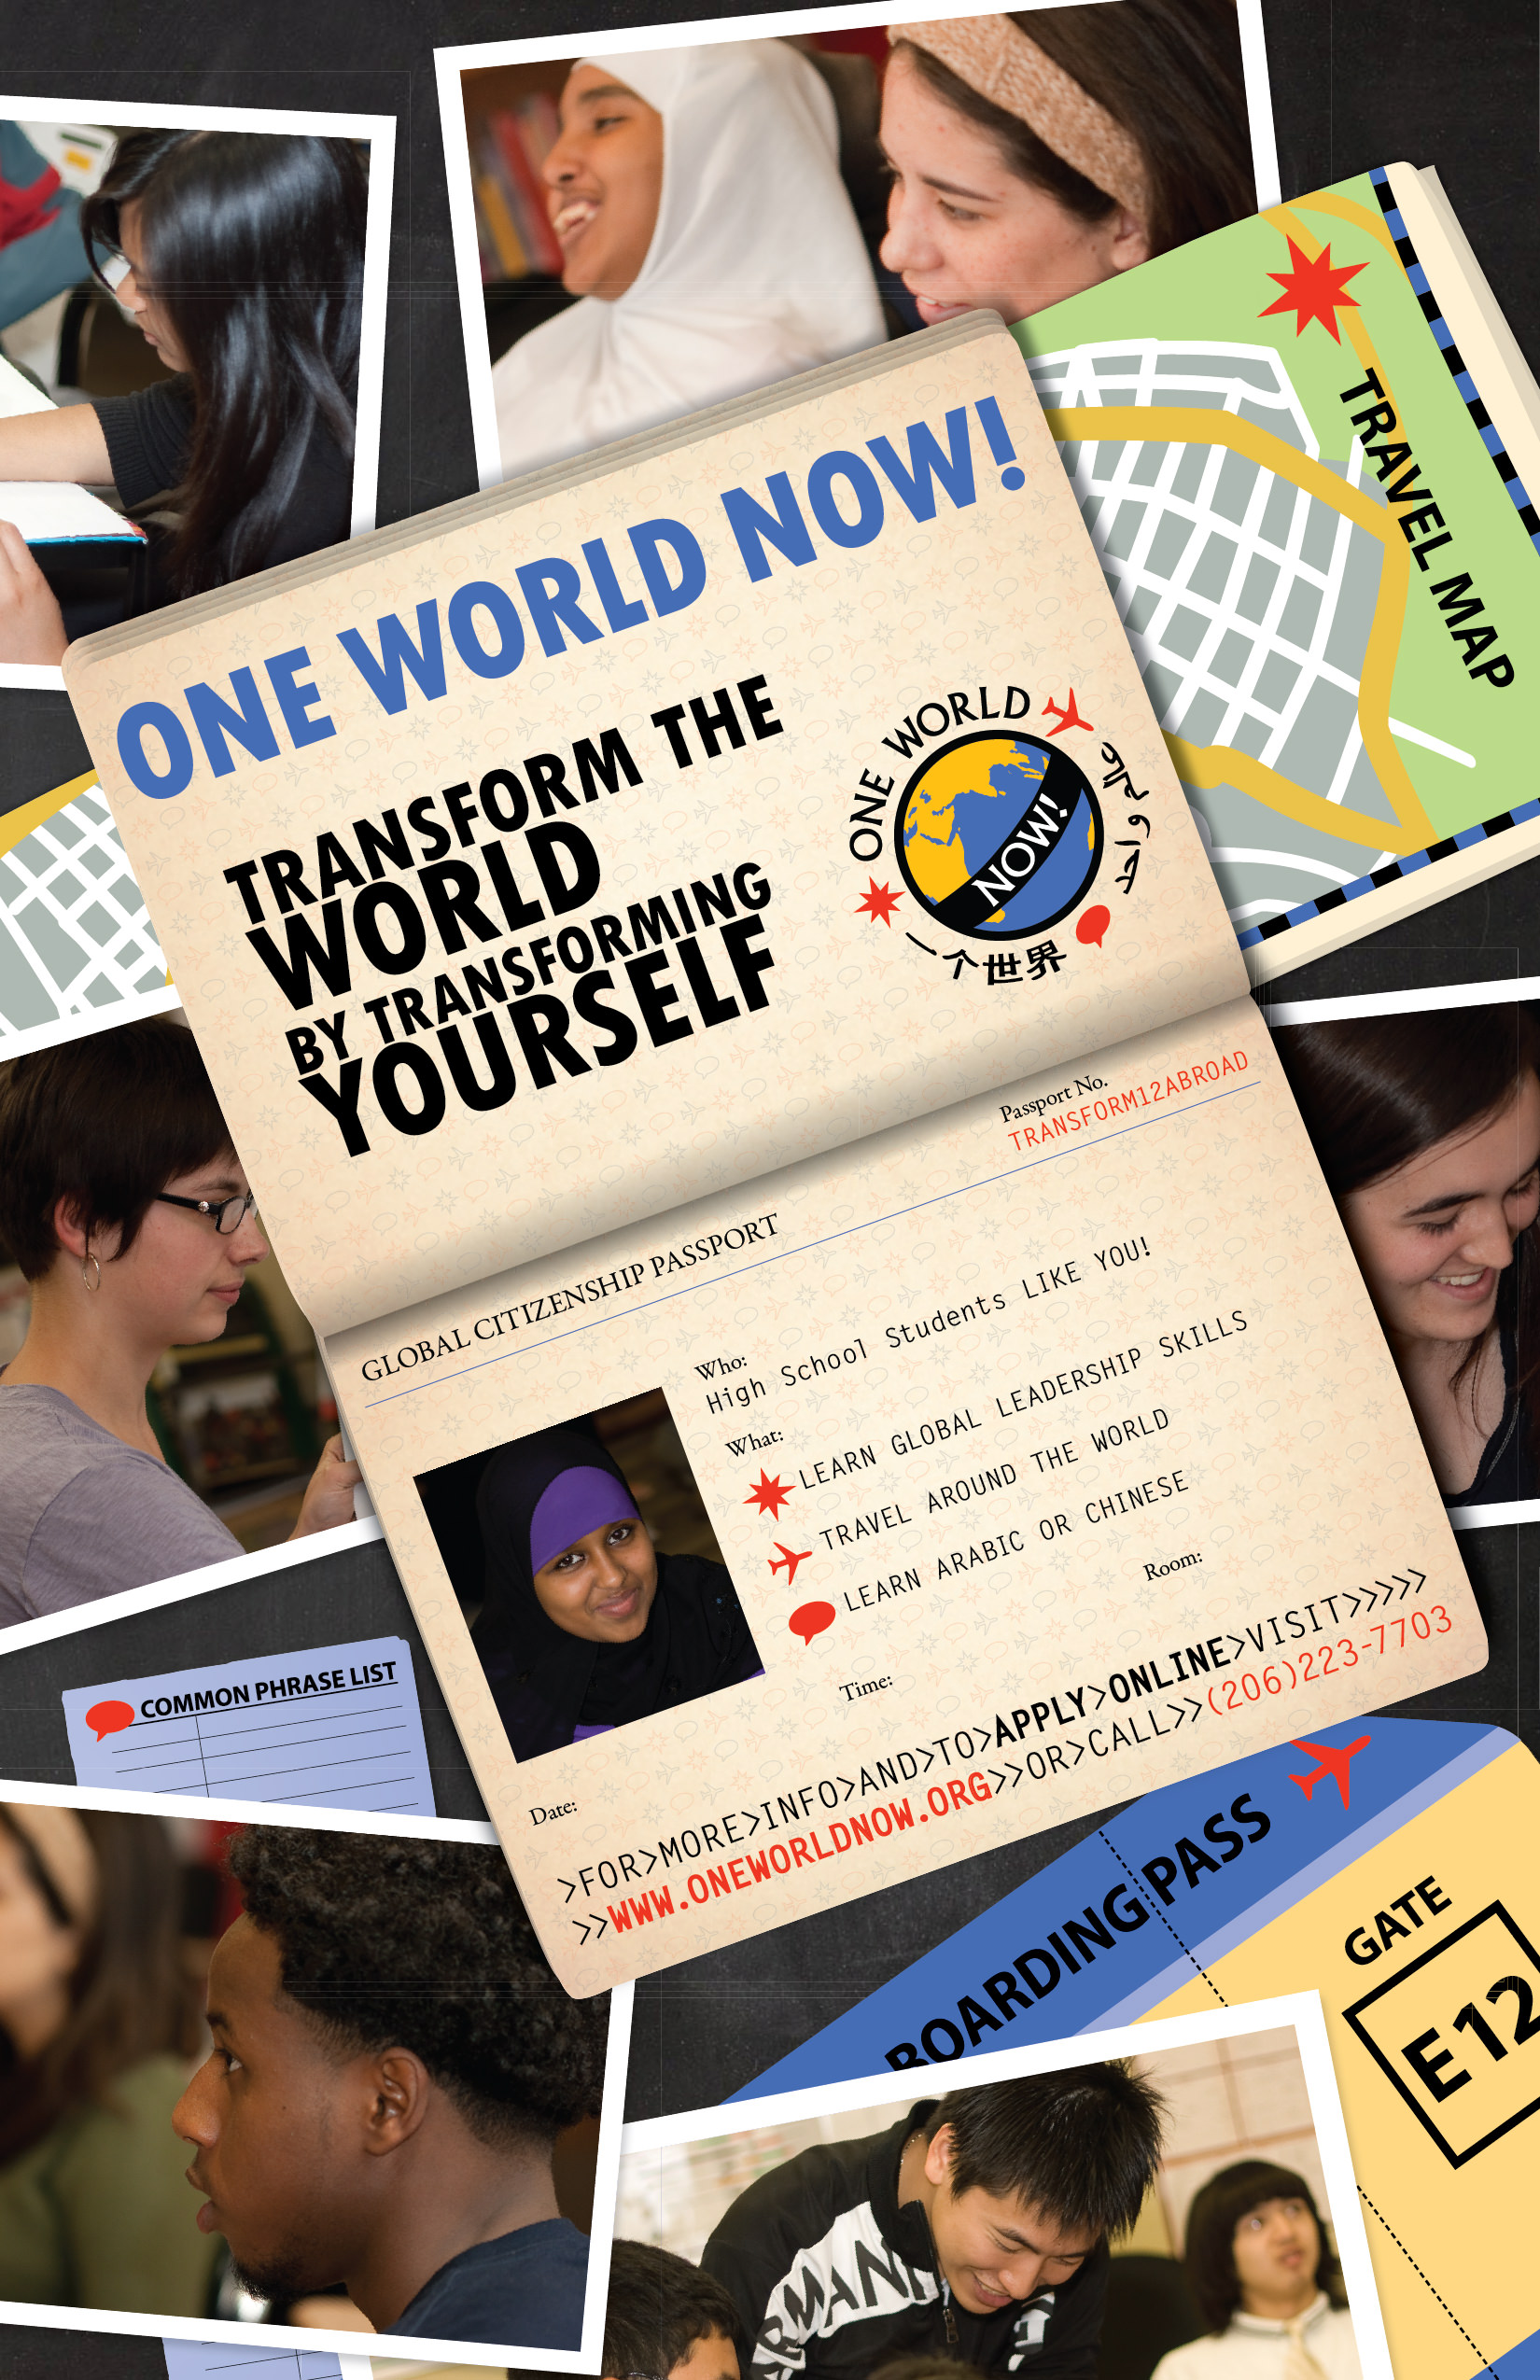 Poster a Week Free Posters Online - This Week: One World Now, Non-profit Organization Poster